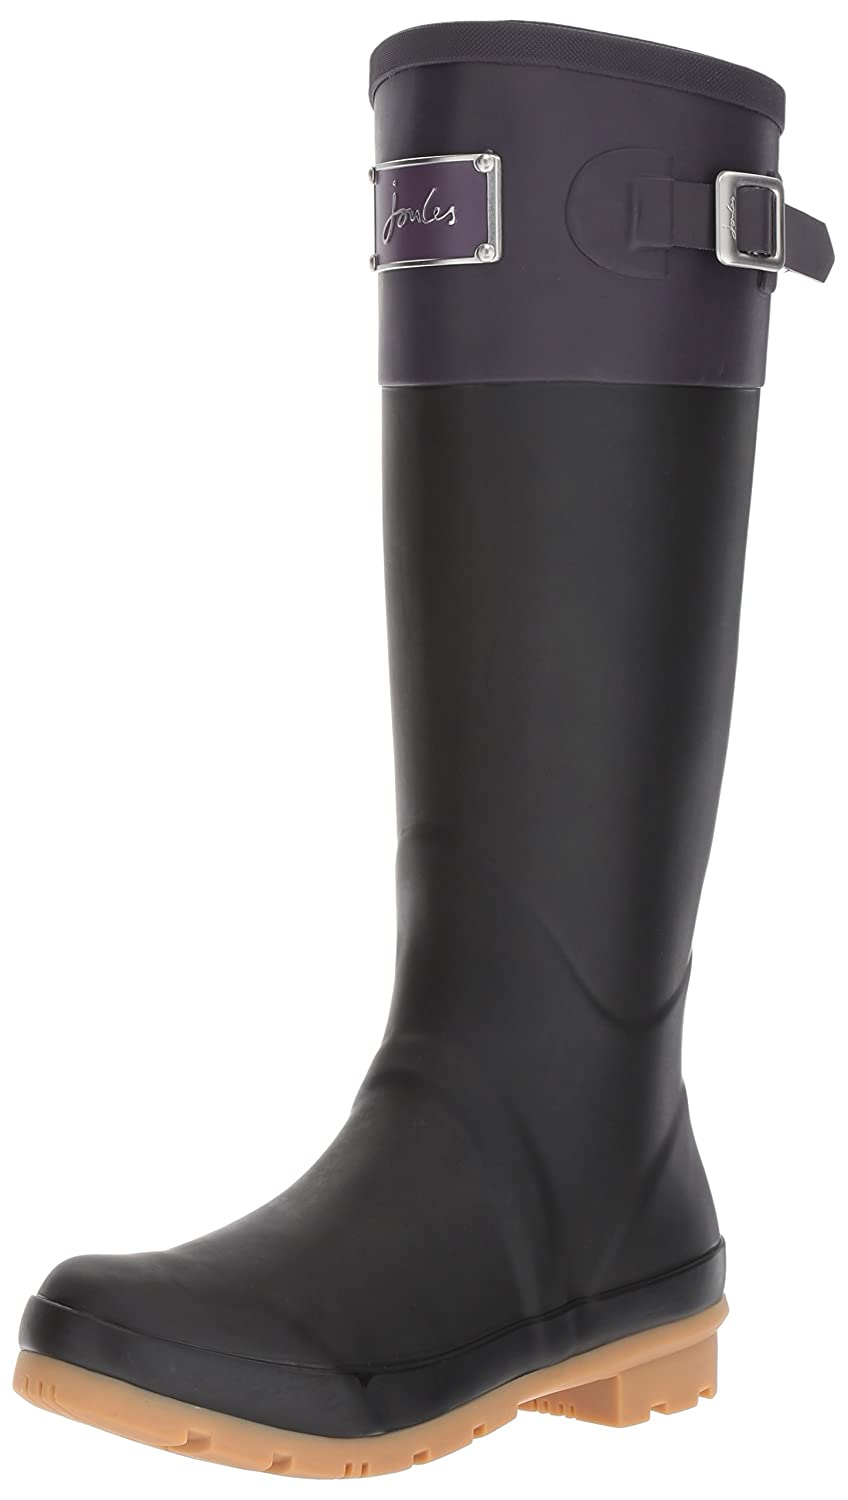 Joules Women's Cavendish Rain Boot B06XGNL7YZ 9 B(M) US|Deep Purple